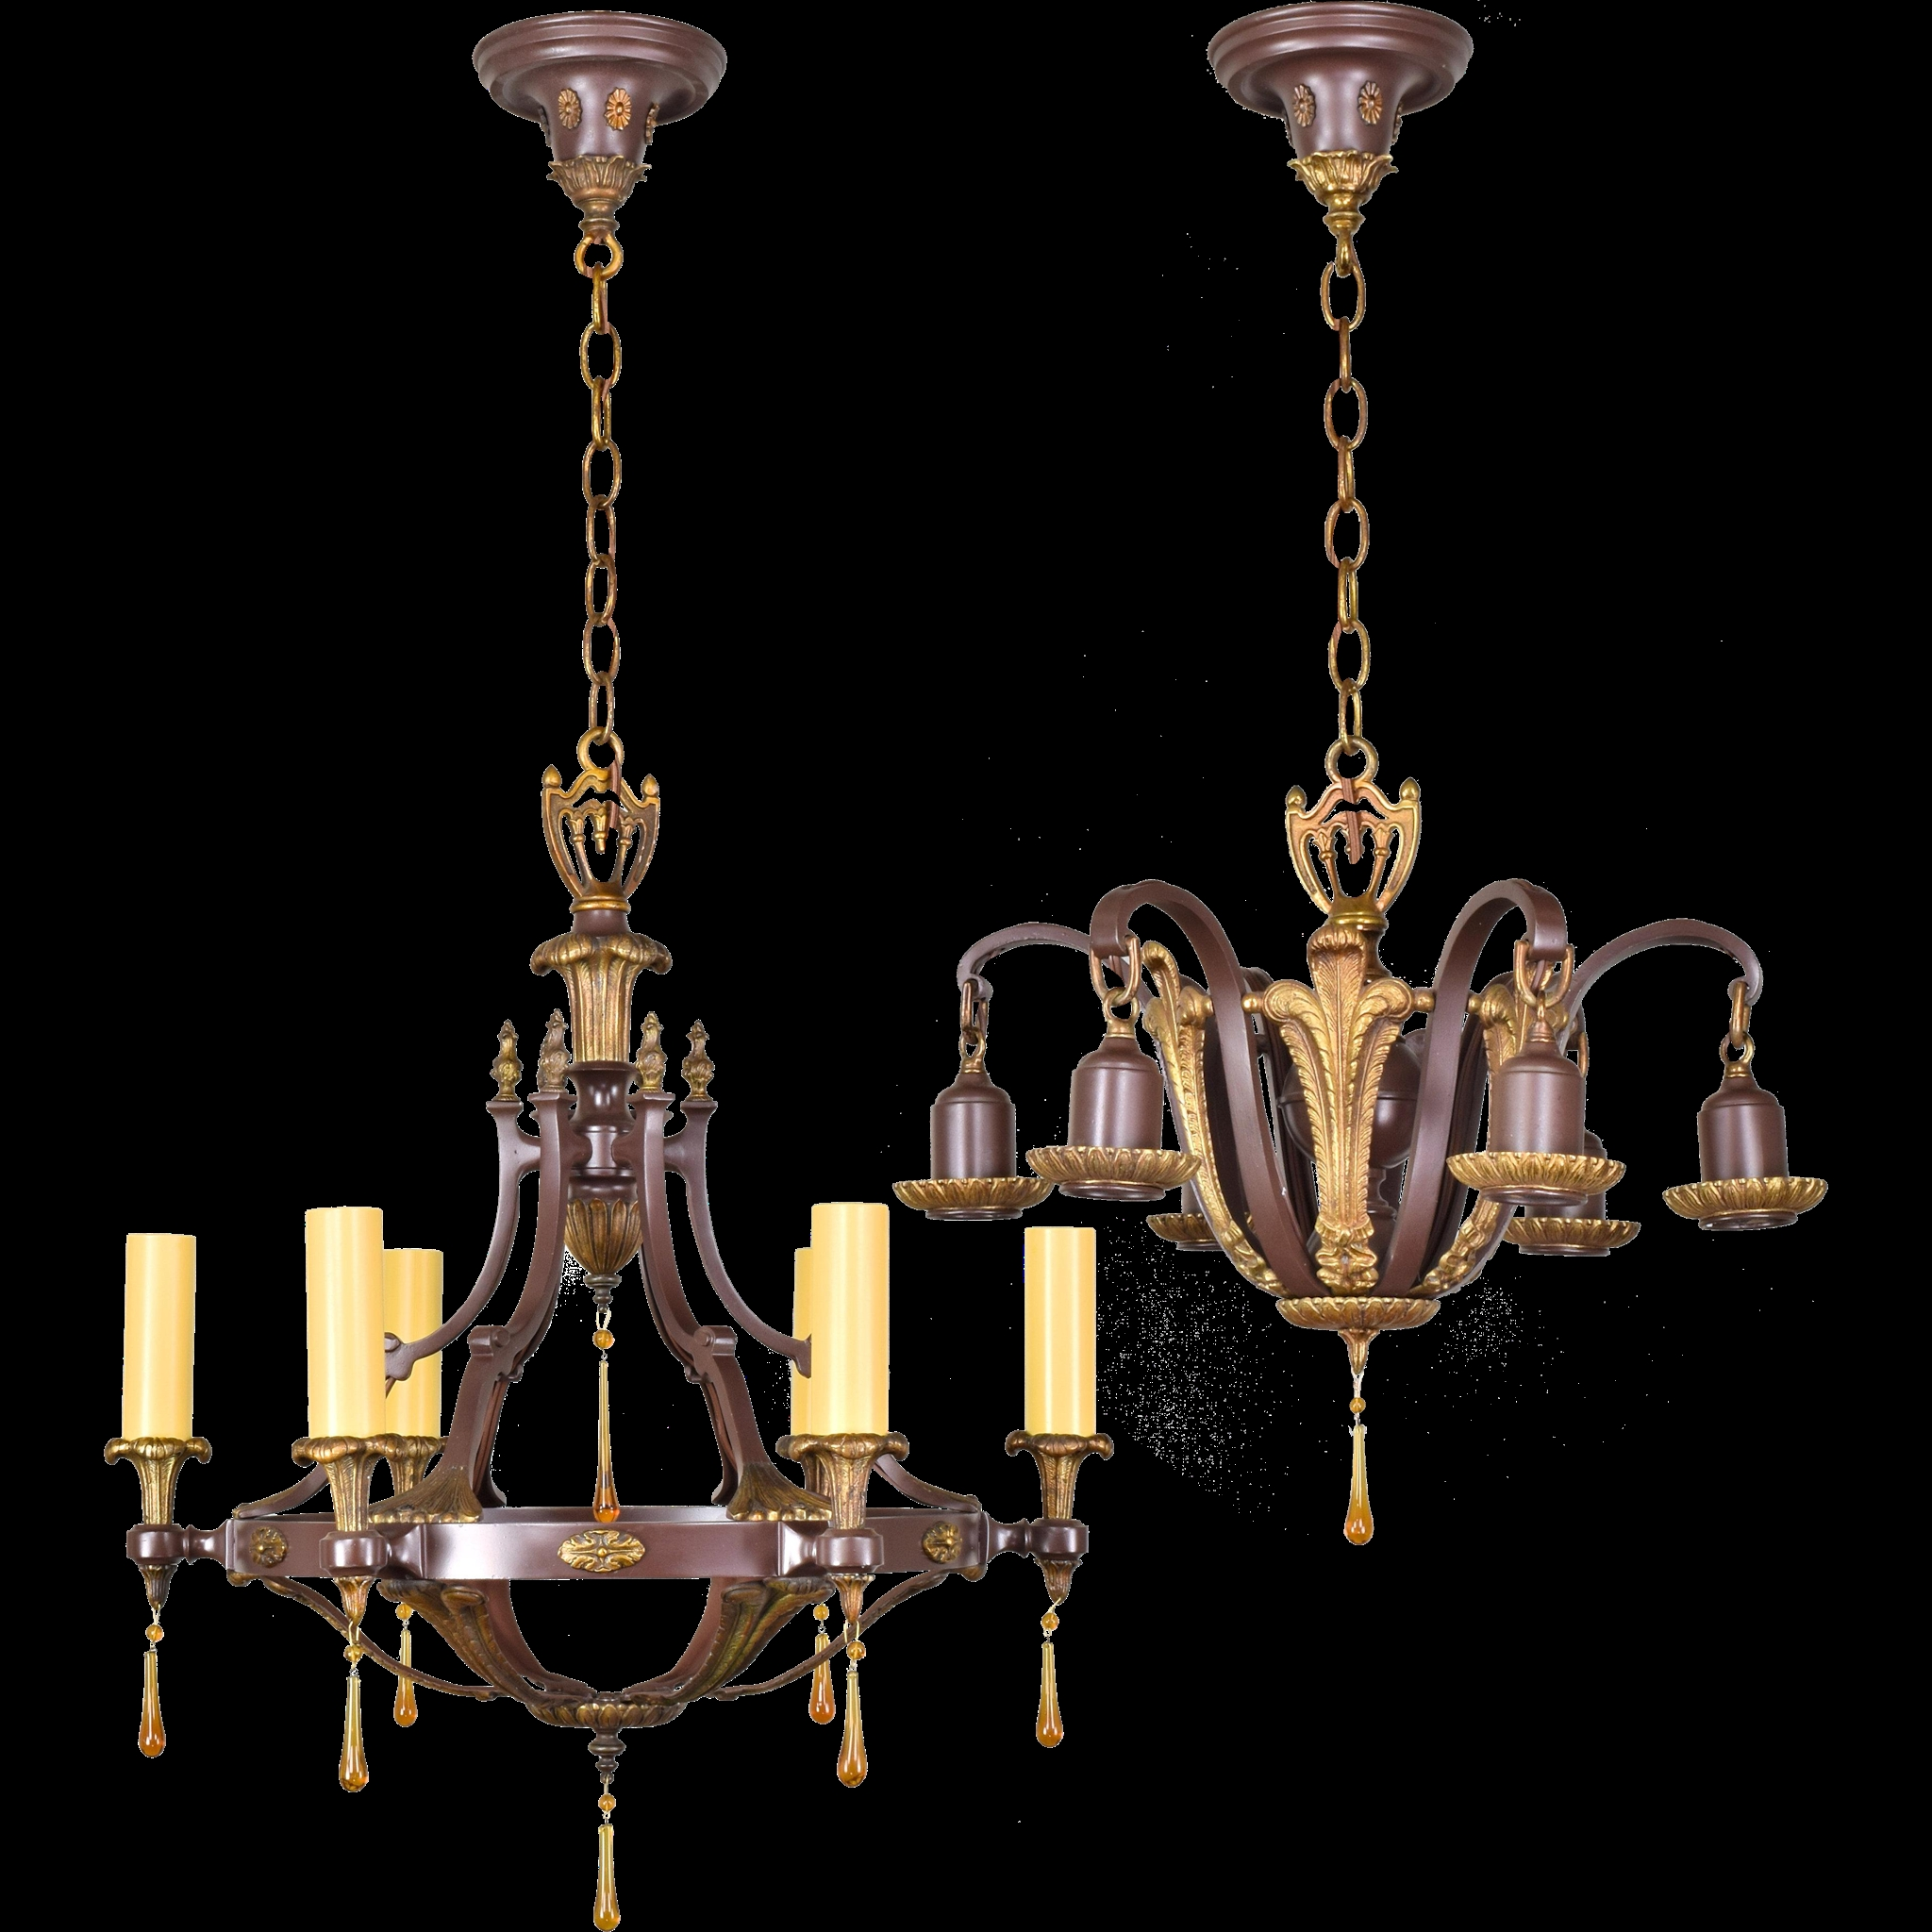 Pair Ornate Brass Vintage Up And Down Light Fixtures Chandeliers With Regard To Ornate Chandeliers (Image 13 of 15)